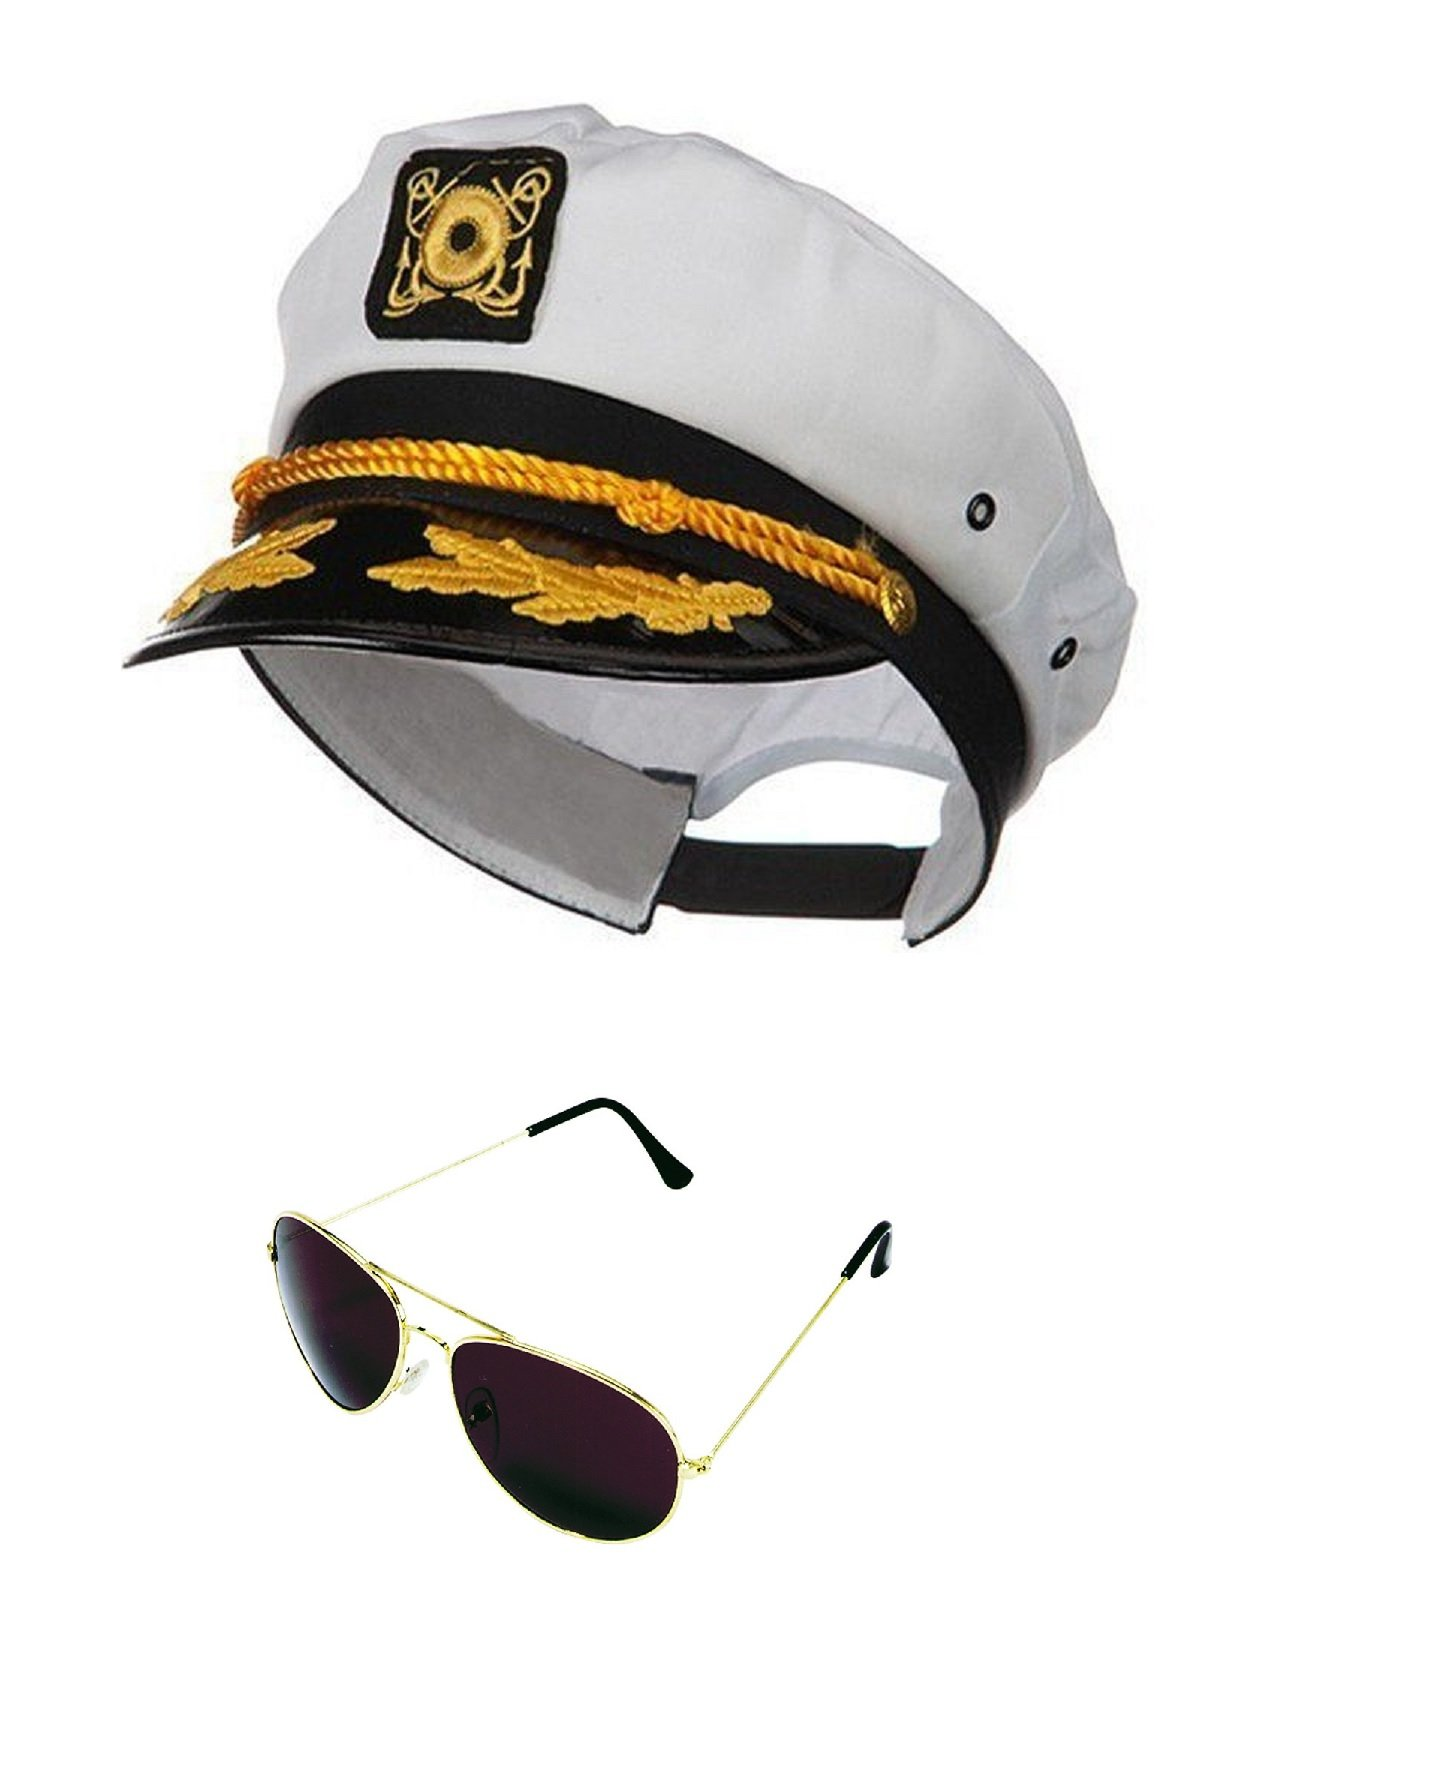 Yacht Boat Captain Hat Sailor Ship Cap White Gold and Gold Aviator Sunglasses by Nicky Bigs Novelties (Image #1)